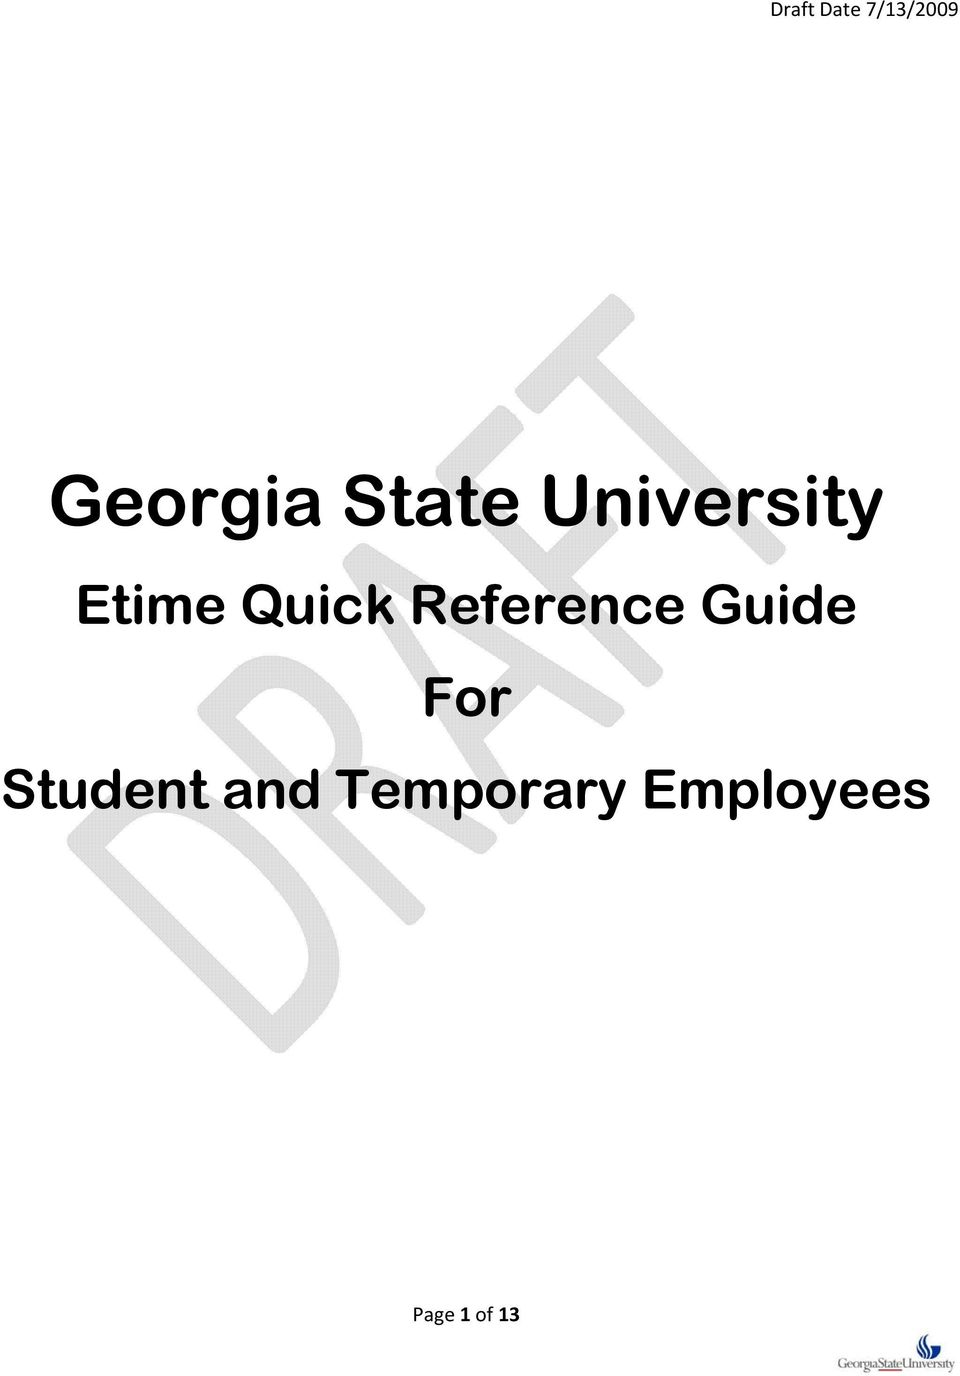 Guide For Student and